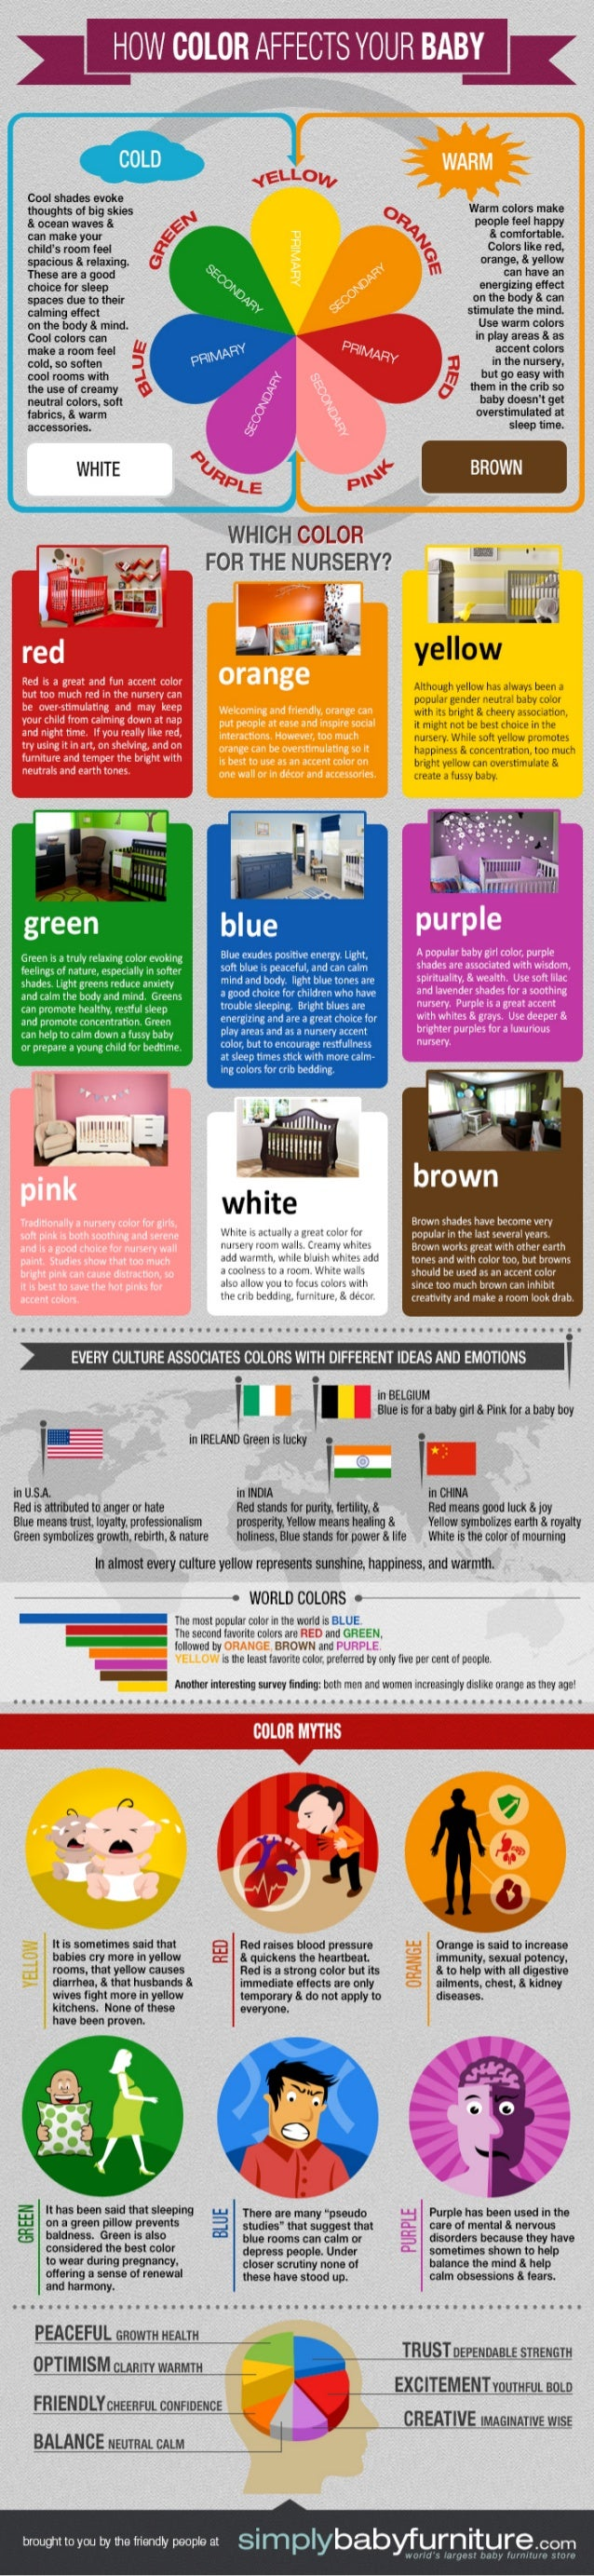 nursery color guide how color affects your baby 39 s mood